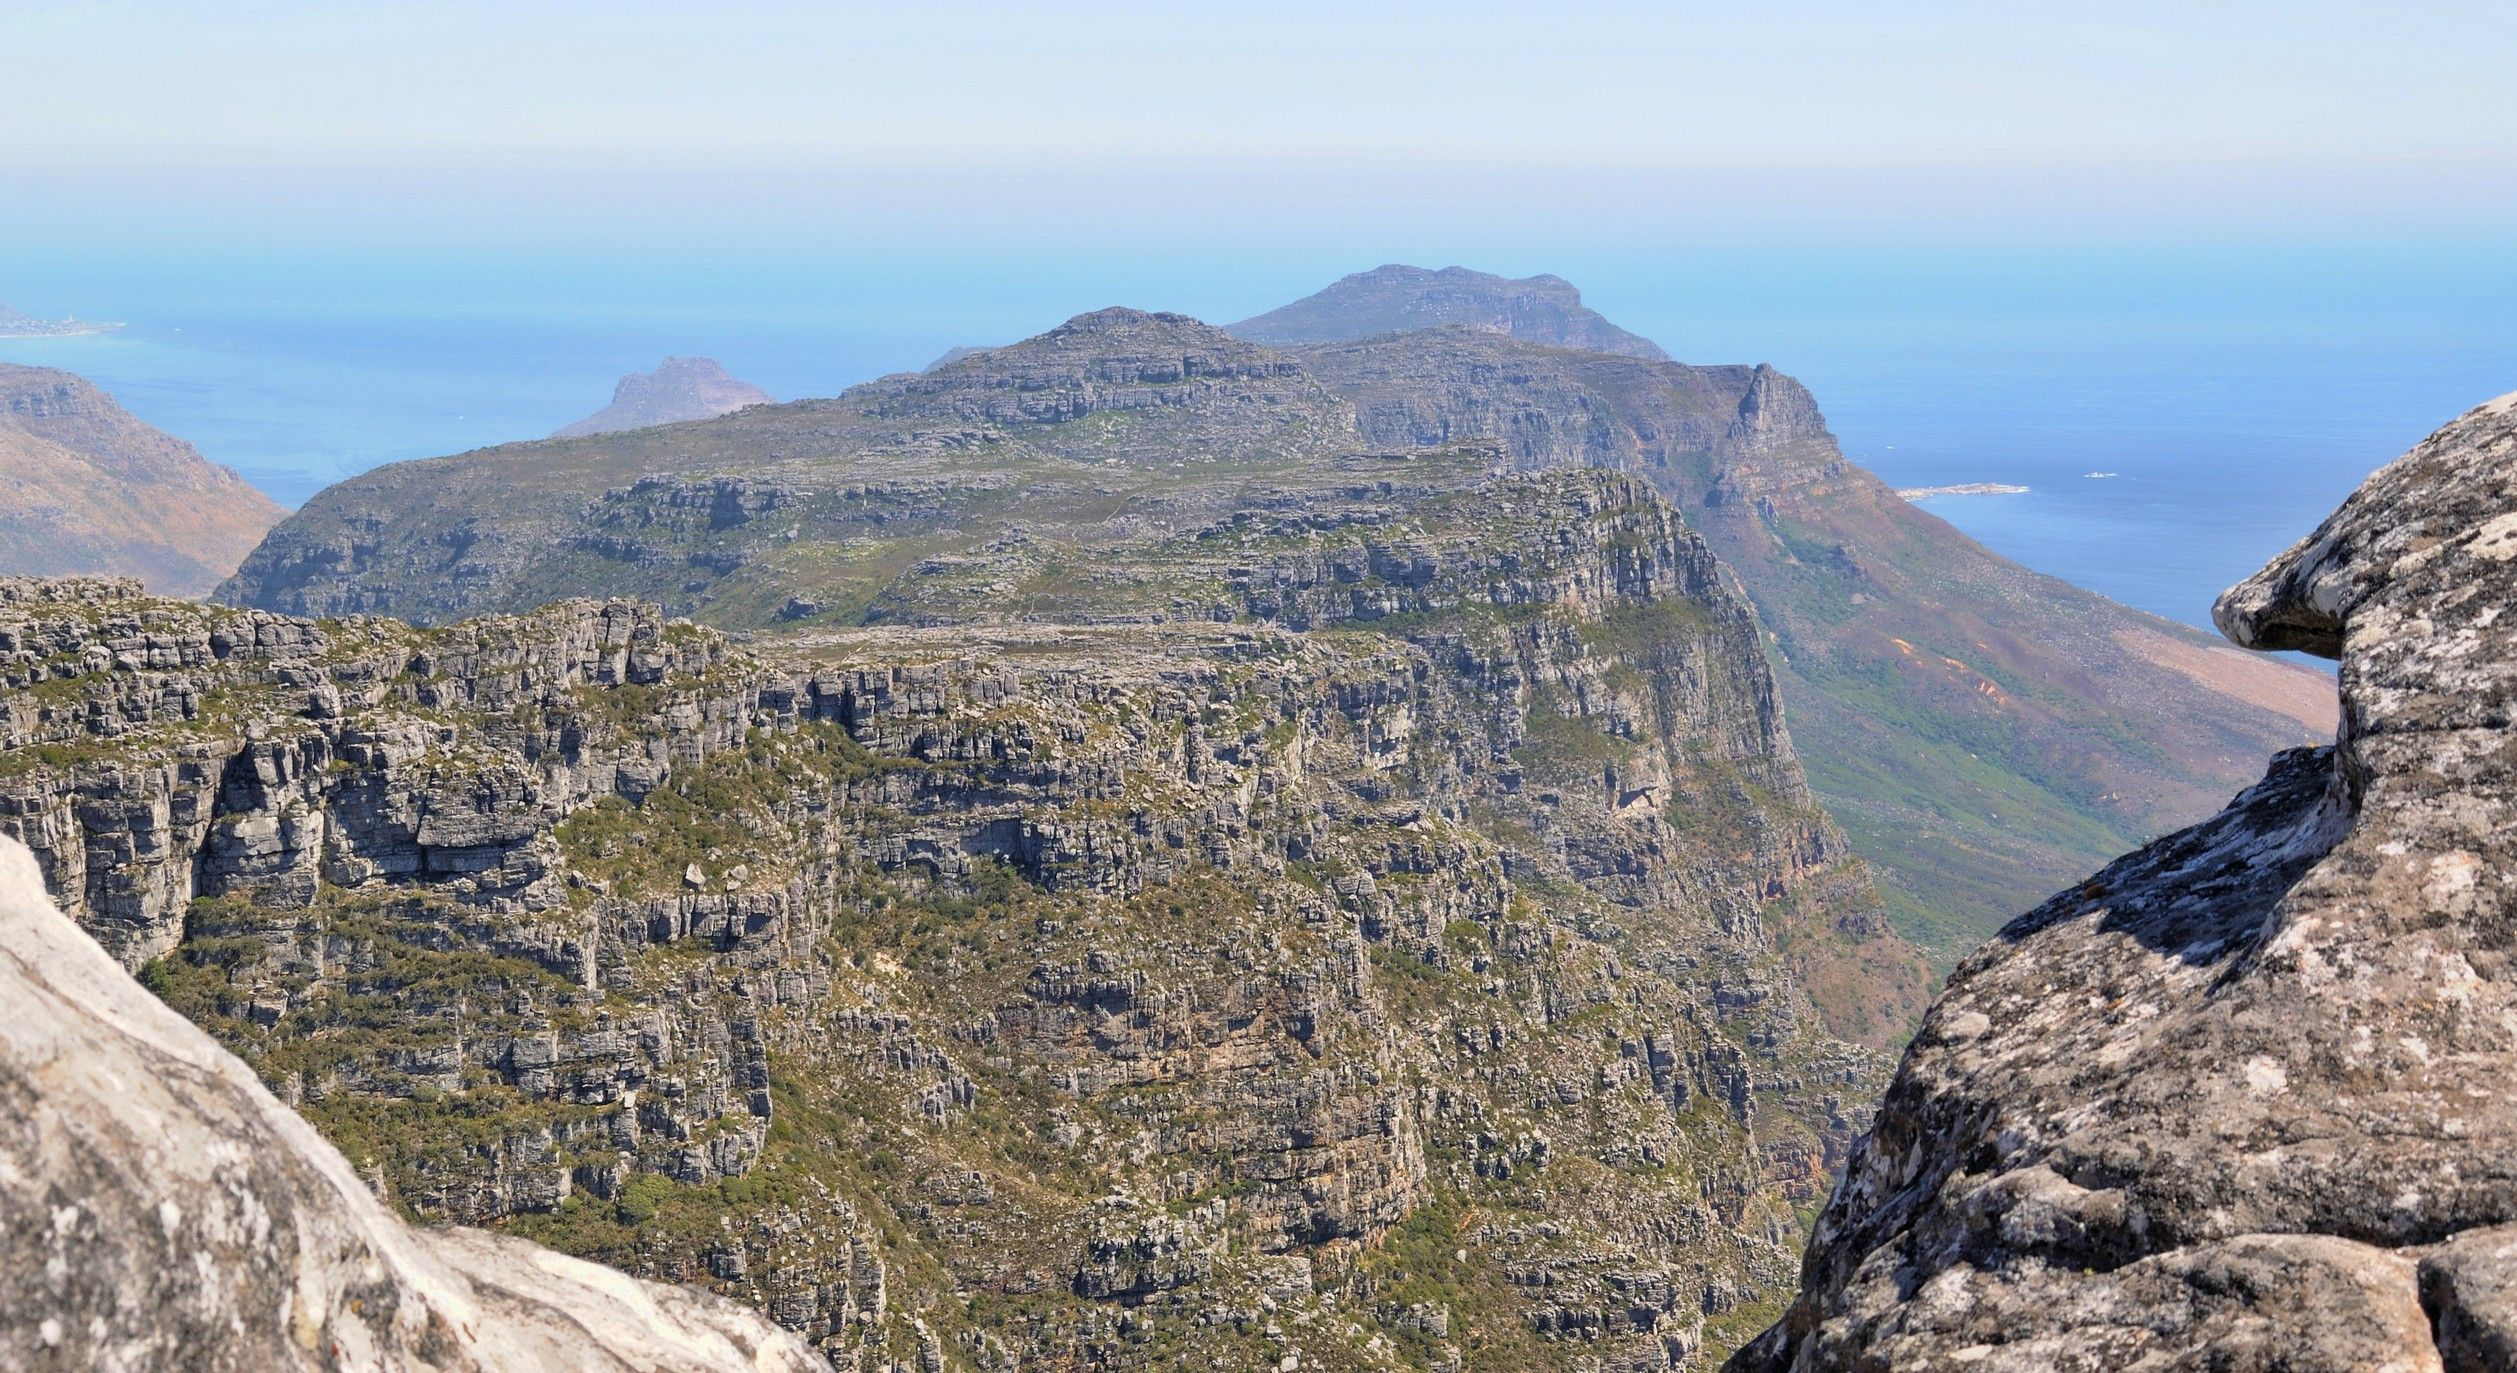 South Africa Table Top Mountain South Africa Pinterest - Table top mountain south africa